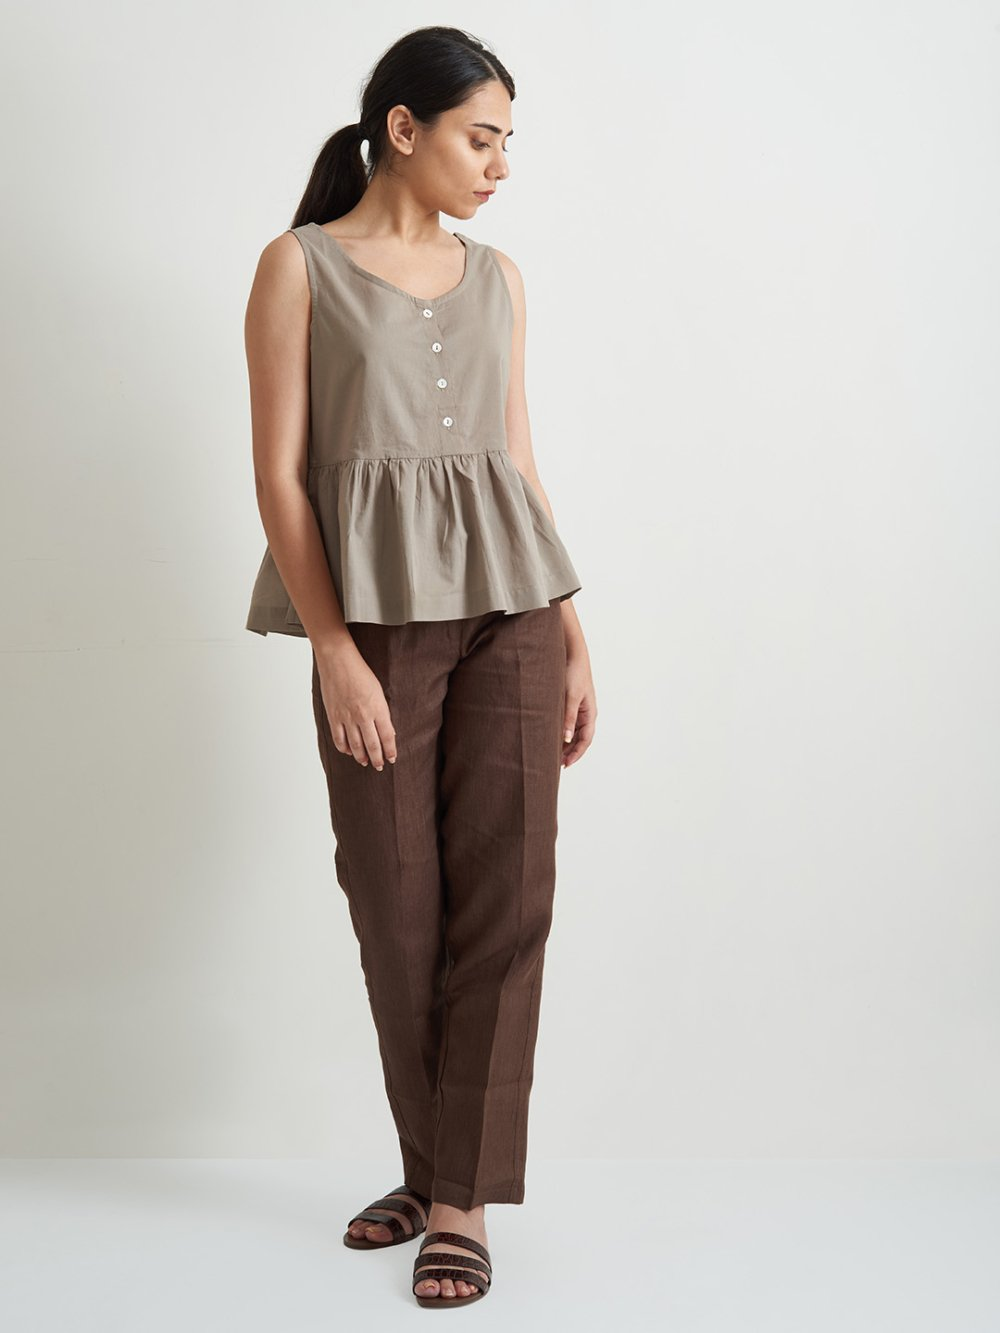 Organic Clothing Linen Woman Top